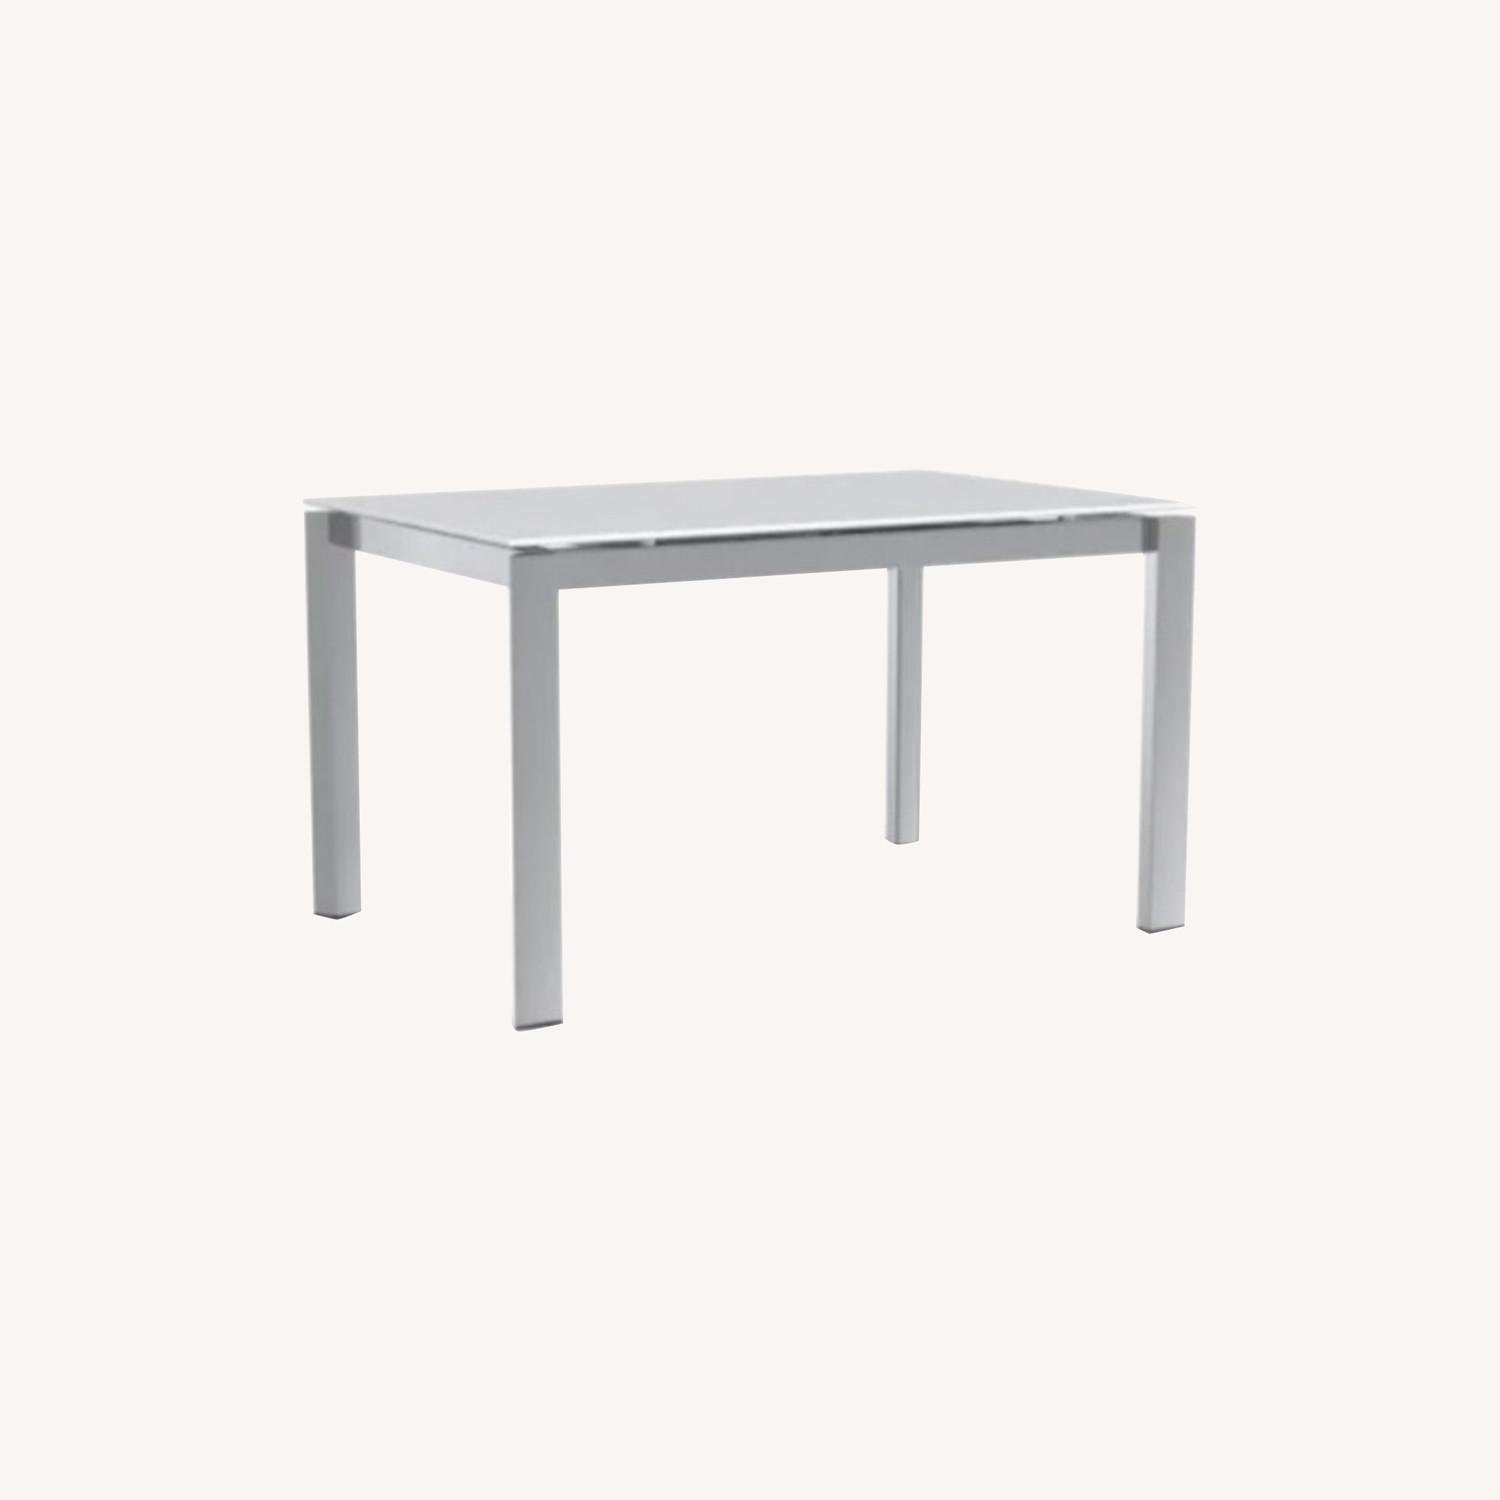 Calligaris Duca Extending Dining Table - image-0